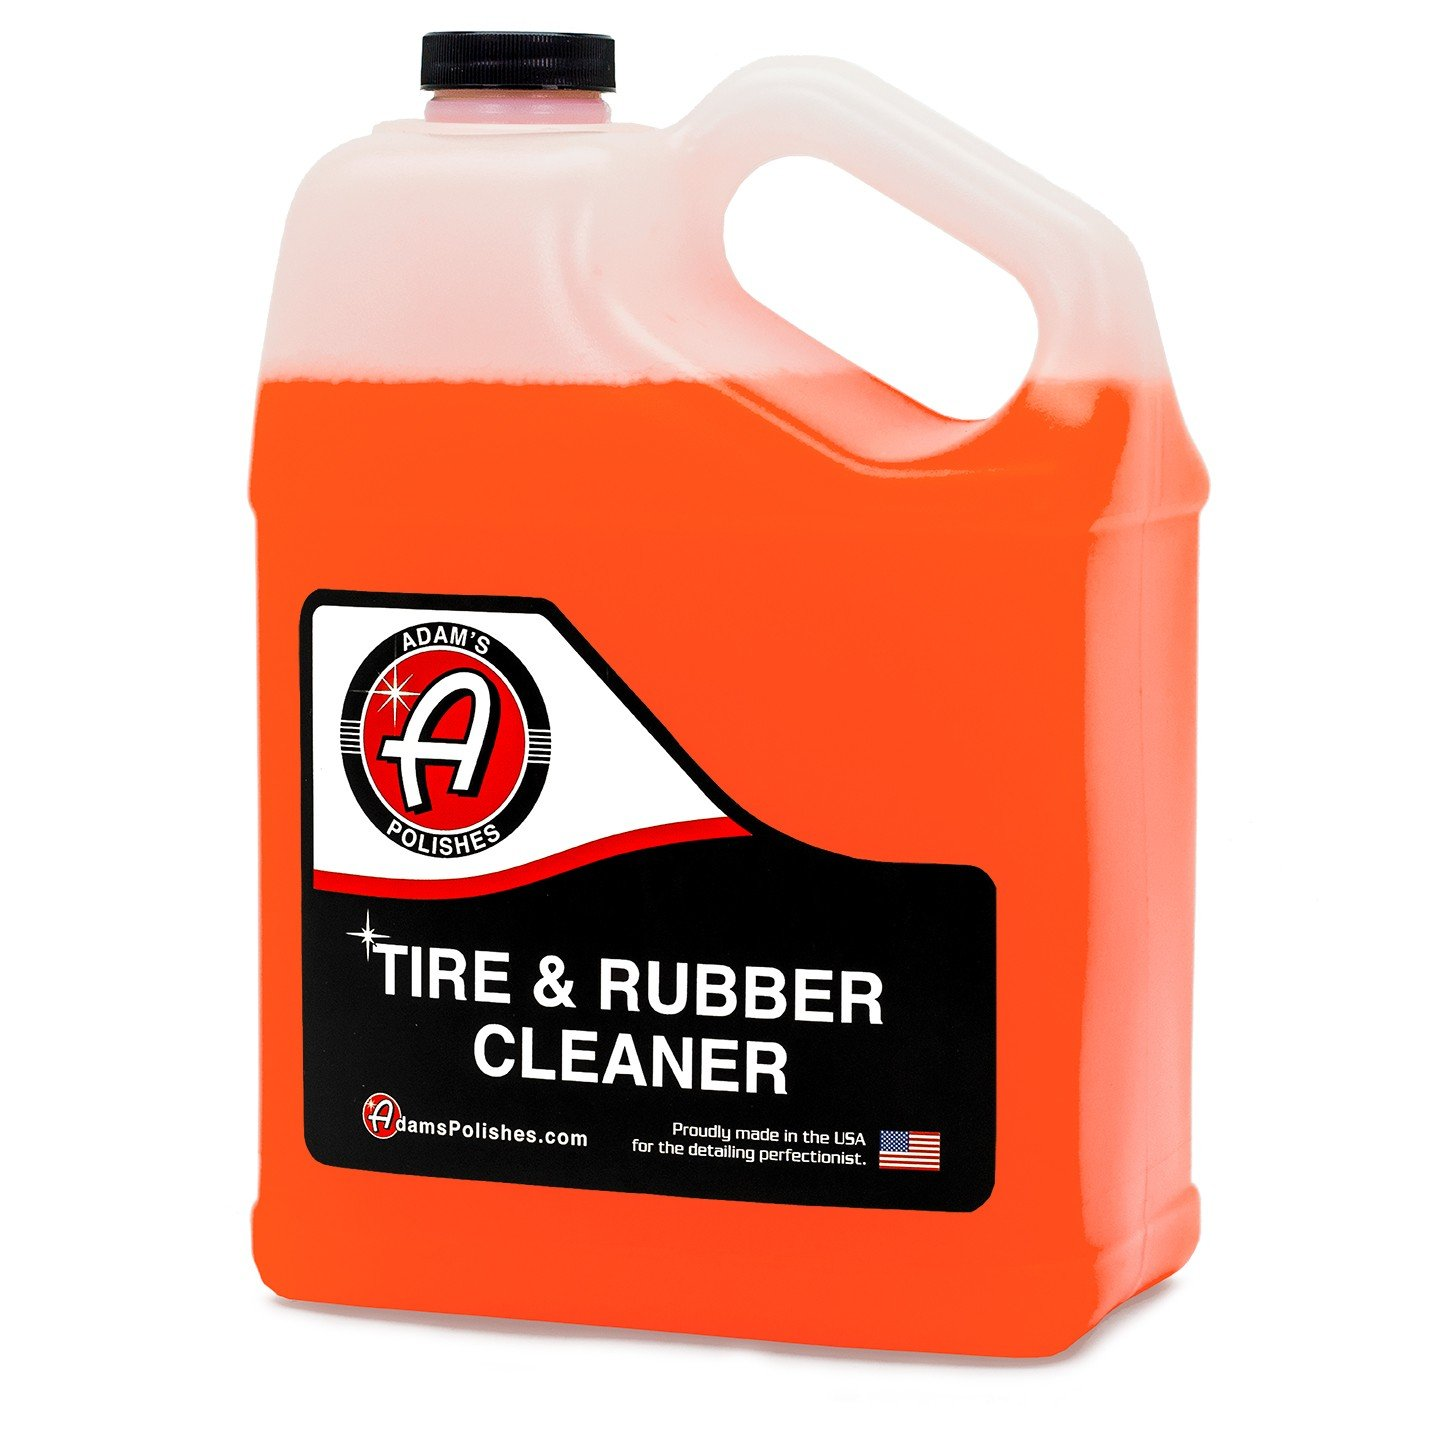 Adam's Tire & Rubber Cleaner - Removes Discoloration from Tires Quickly - Works Great on Tires, Rubber & Plastic Trim, and Rubber Floor Mats (1 Gallon)